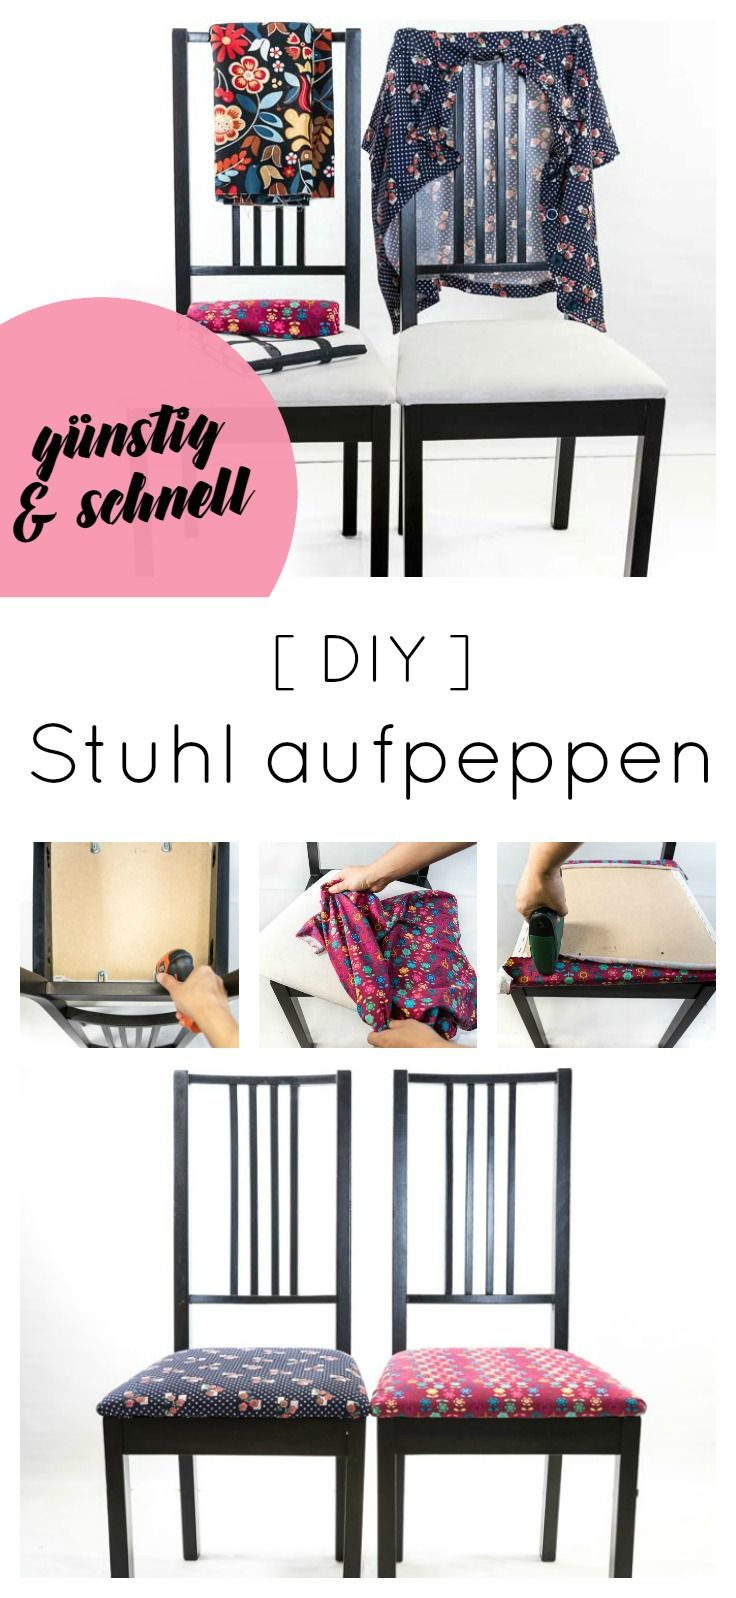 ikea hack stuhl mit stoff beziehen pinterest g nstige m bel alte st hle und upcycling ideen. Black Bedroom Furniture Sets. Home Design Ideas